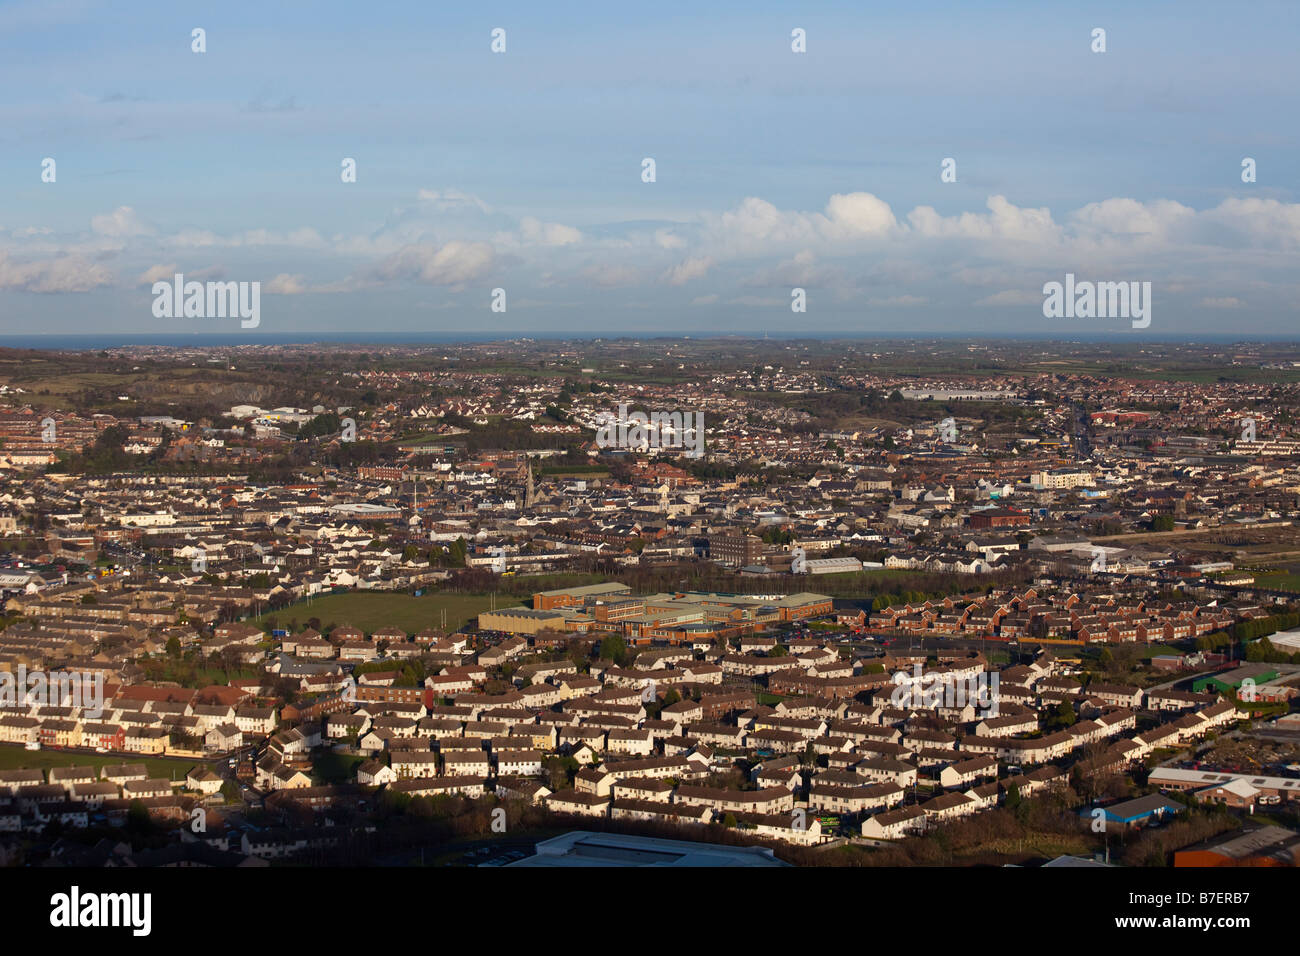 Newtonards town, County Down, Northern Ireland, UK - Stock Image